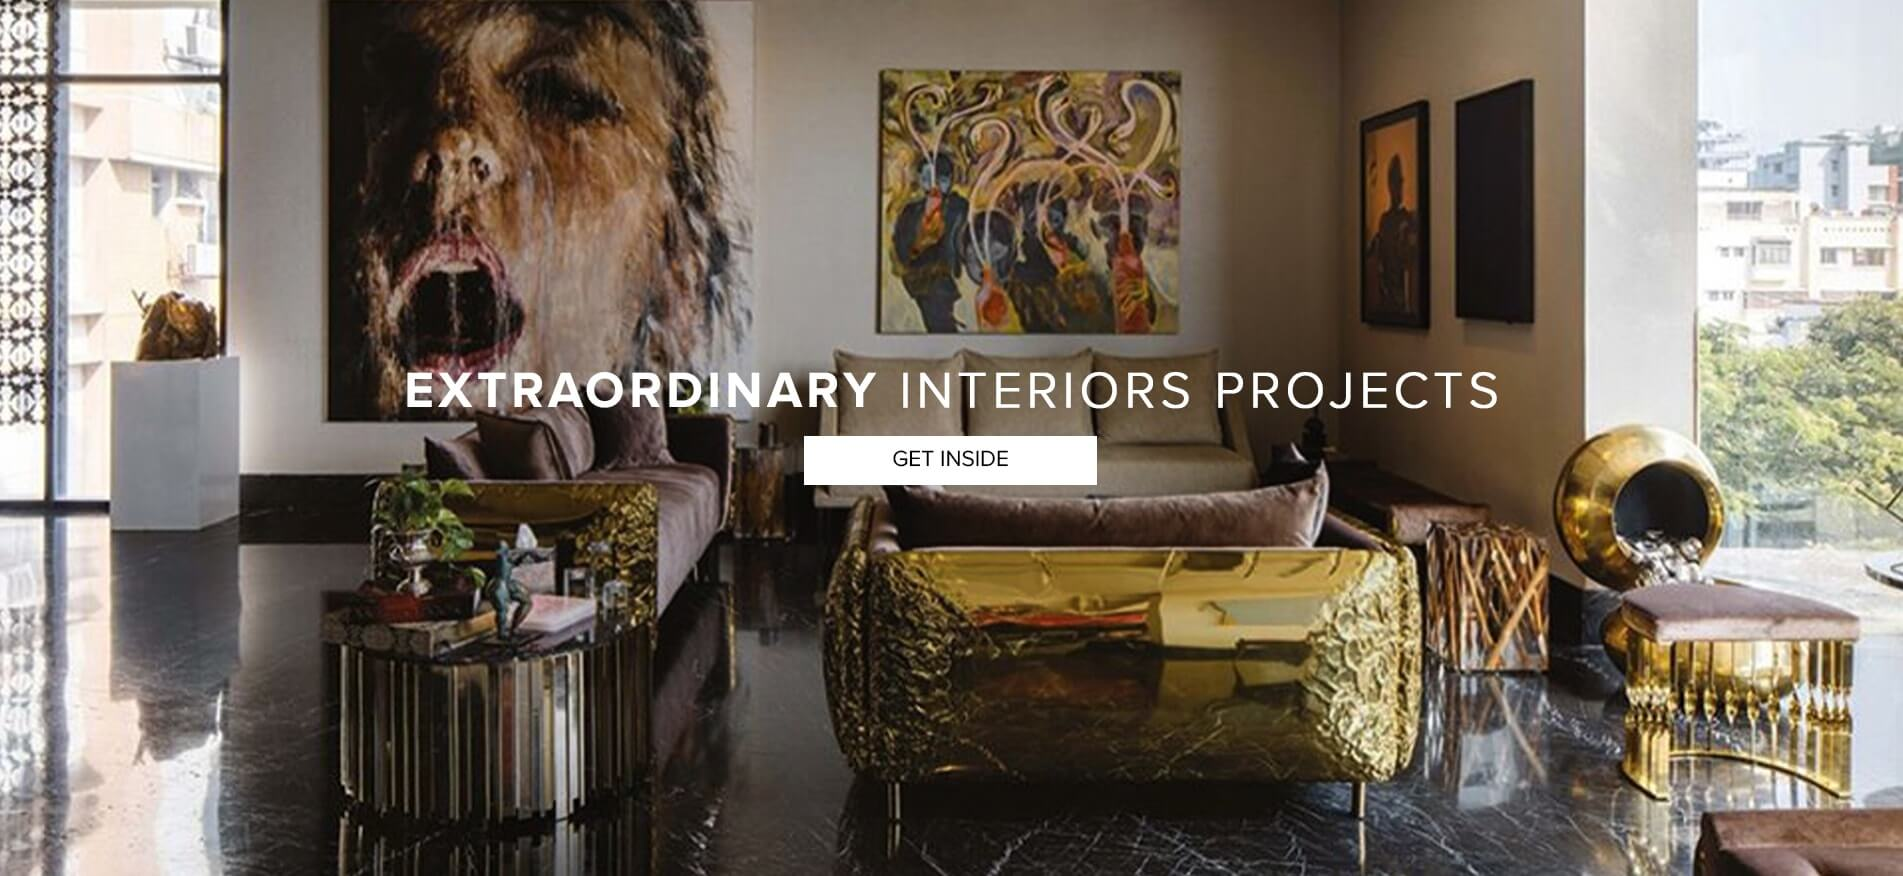 Extraordinary Interiors Project - Get Inside  Homepage banner projects